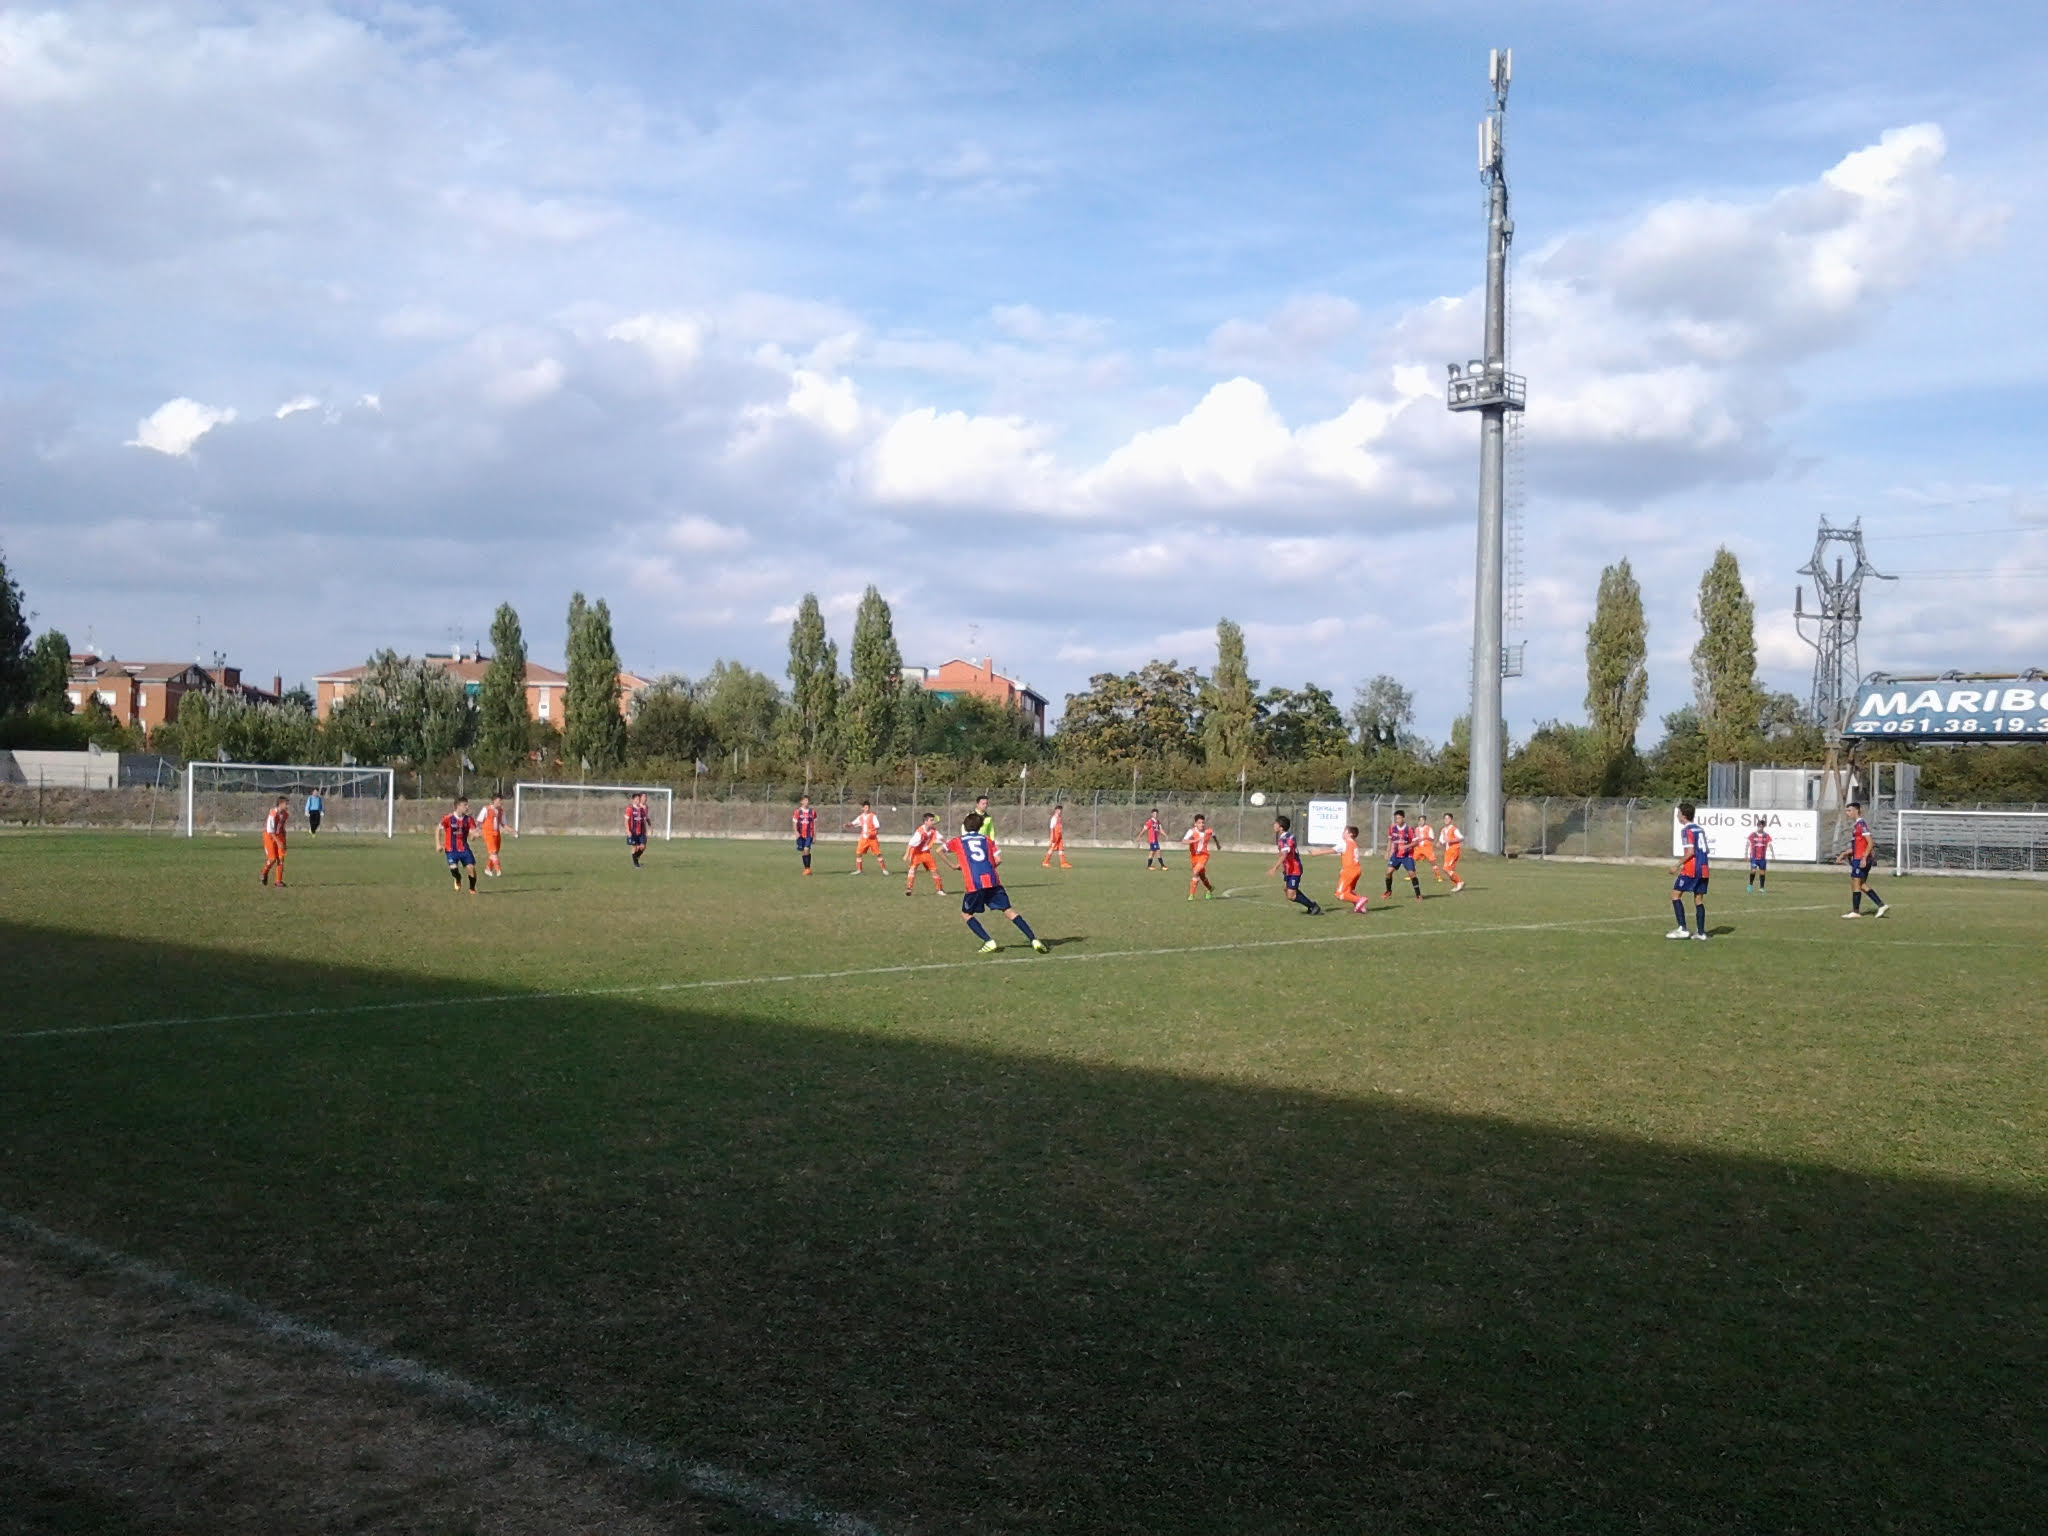 GIOVANISSIMI 2002: DUE SU DUE NEL WEEKEND